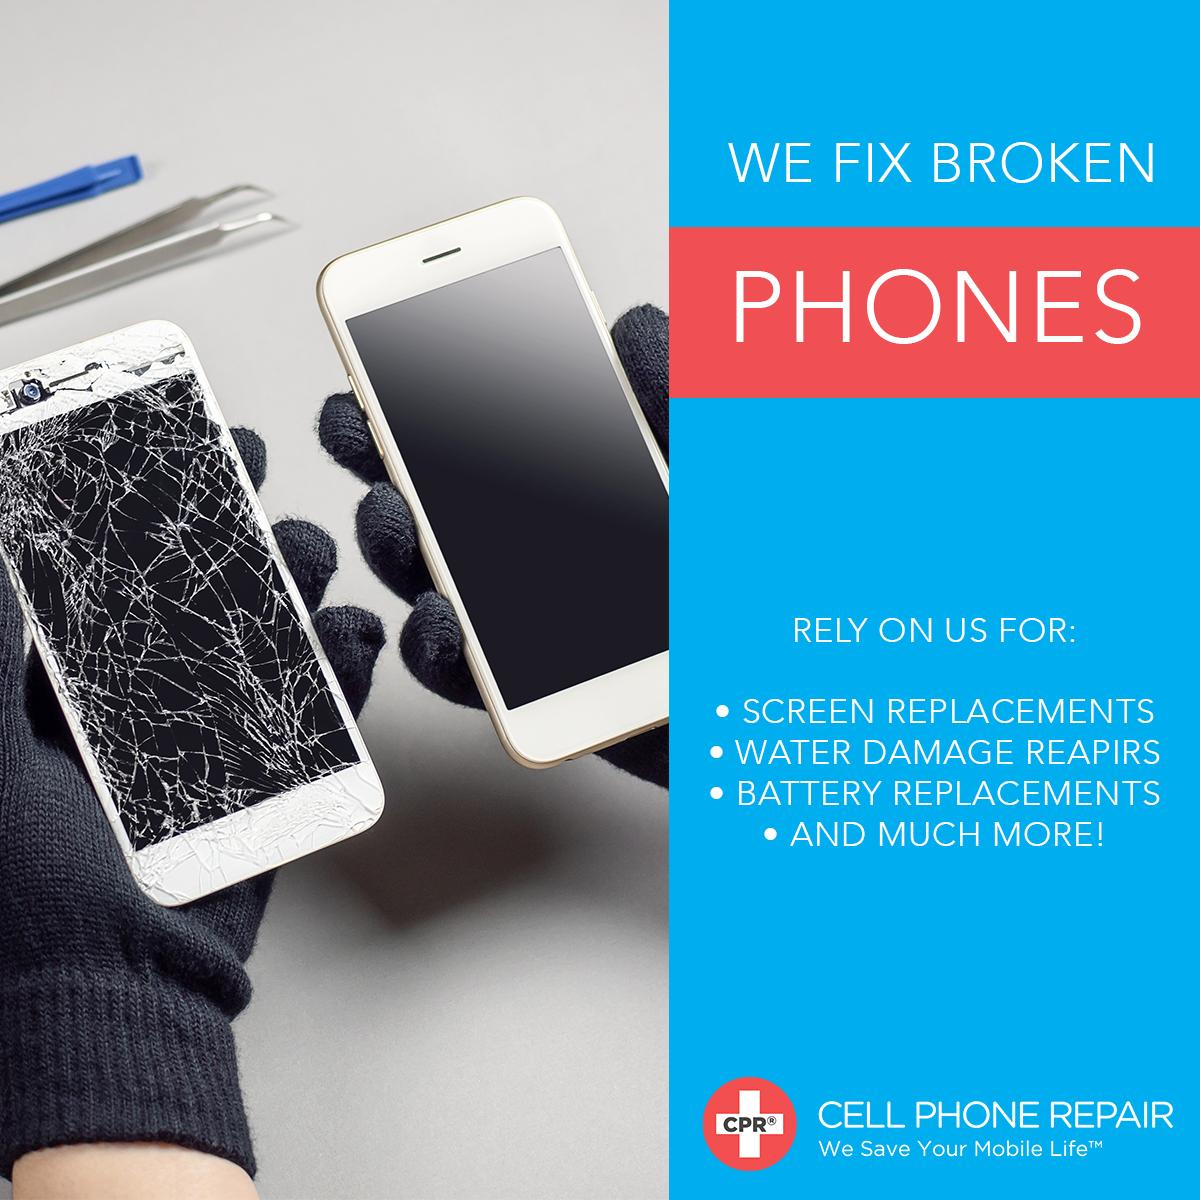 d3efcc184d2b46 From cracked screens to water damage, count on the repair experts at CPR Cell  Phone Repair to save your mobile life! Find a store near you: ...